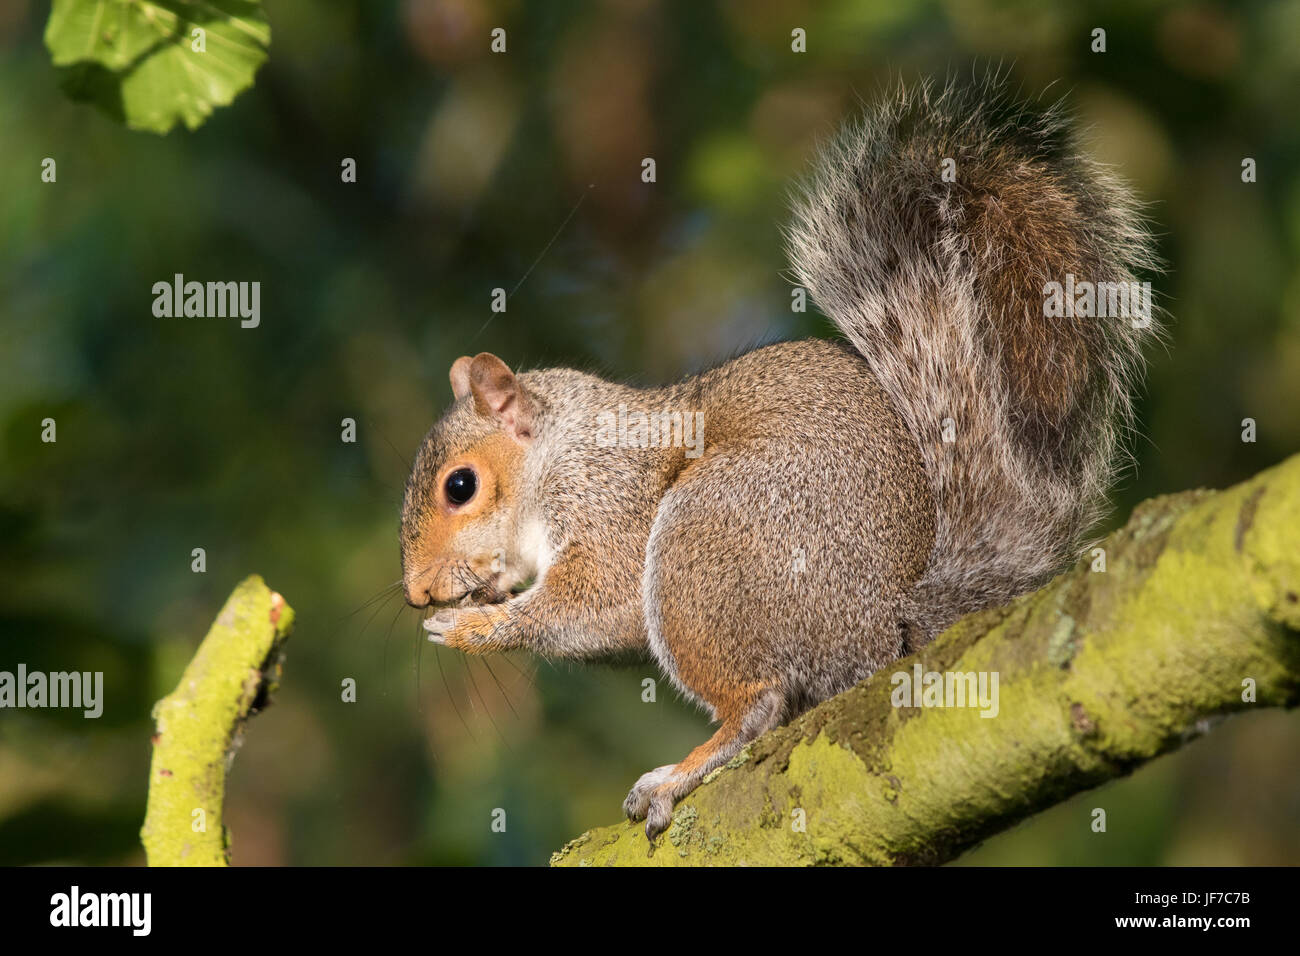 Eastern Grey Squirrel (Sciurus carolinensis) eating a seed while sitting on a branch - Stock Image